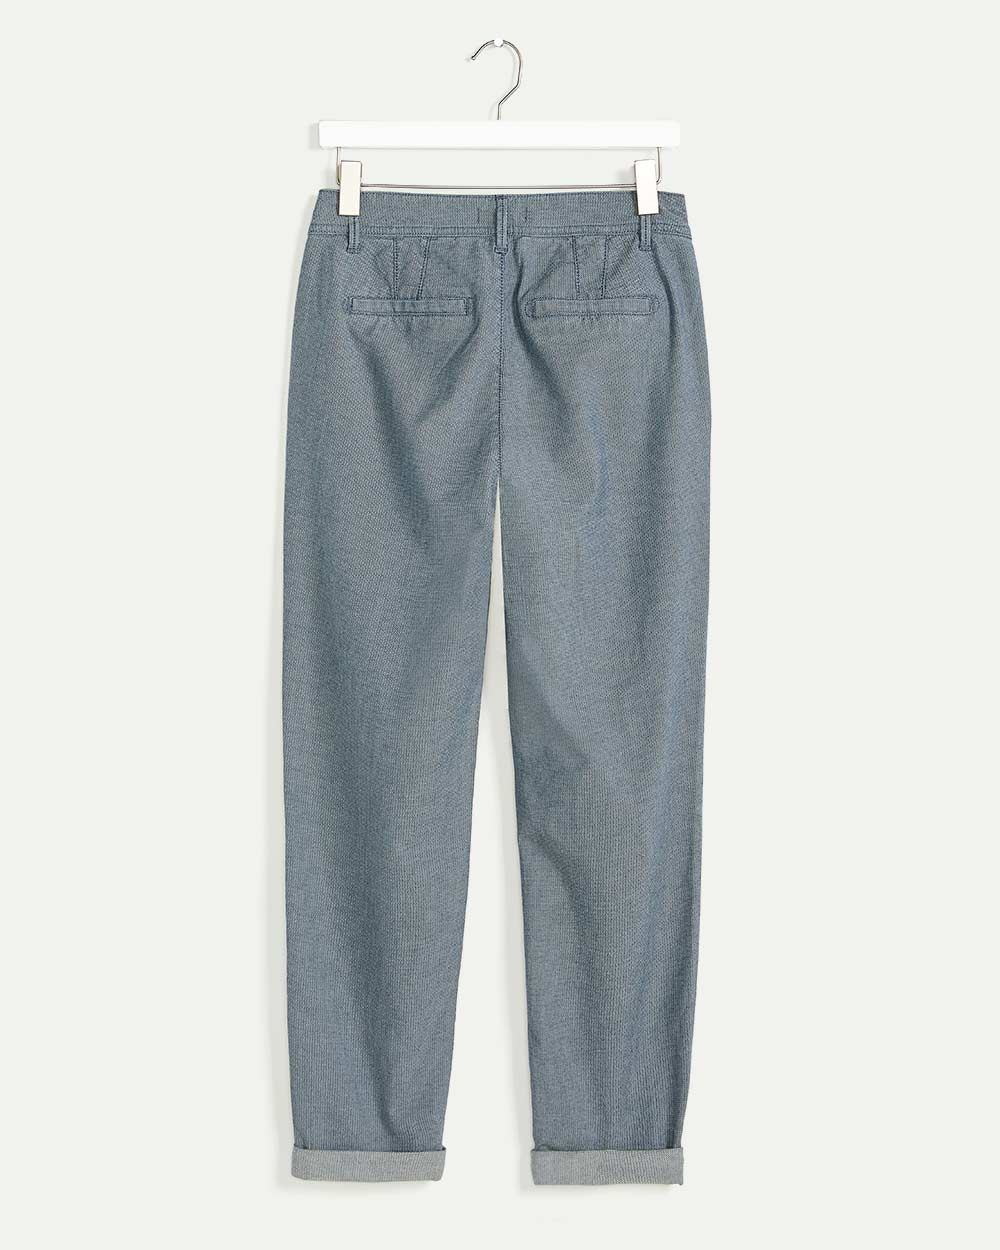 Herringbone Chino Pants